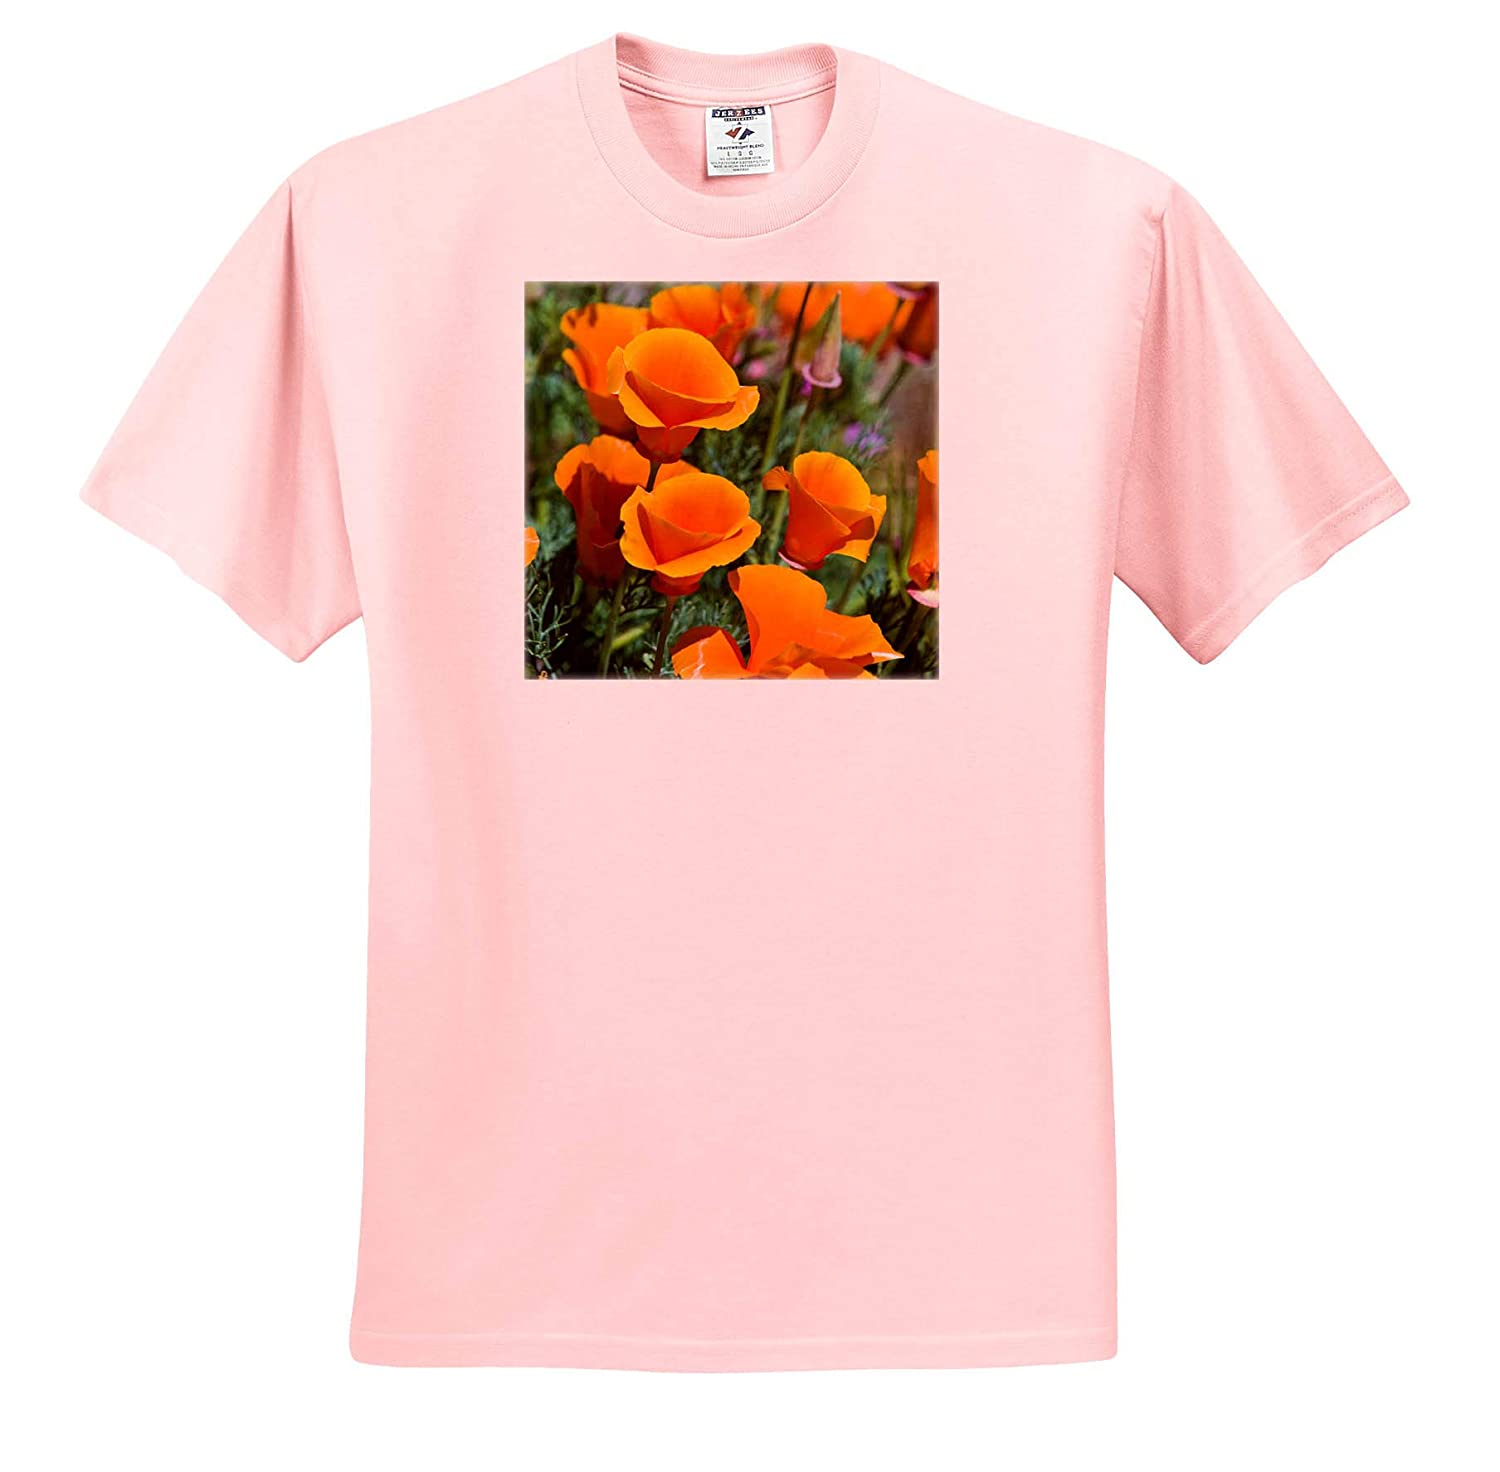 Adult T-Shirt XL 3dRose Danita Delimont Antelope Valley ts/_314711 California Poppy USA California Poppies